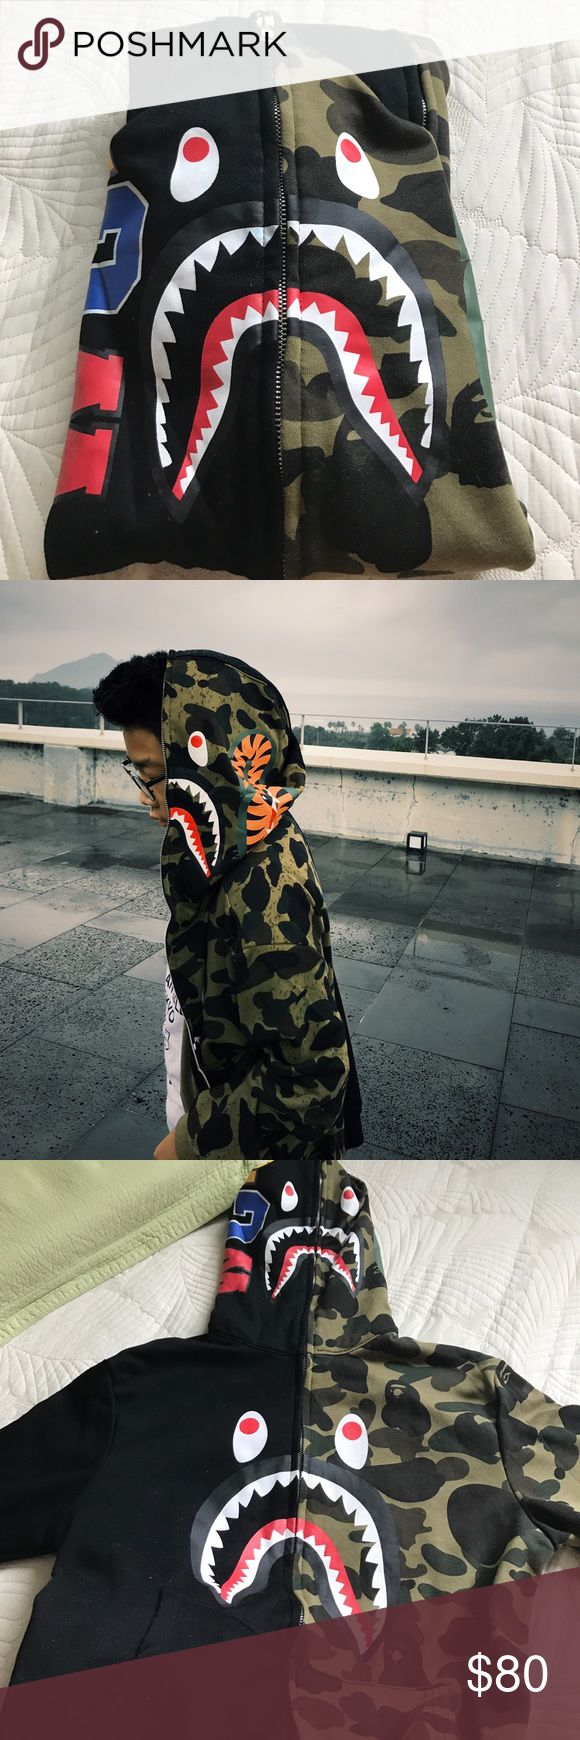 Selling this Replica BAPE shark hoodie 🦈 on Poshmark! My username is: iann_kim. #shopmycloset #poshmark #fashion #shopping #style #forsale #Bape #Other#cheapbape #replicabape